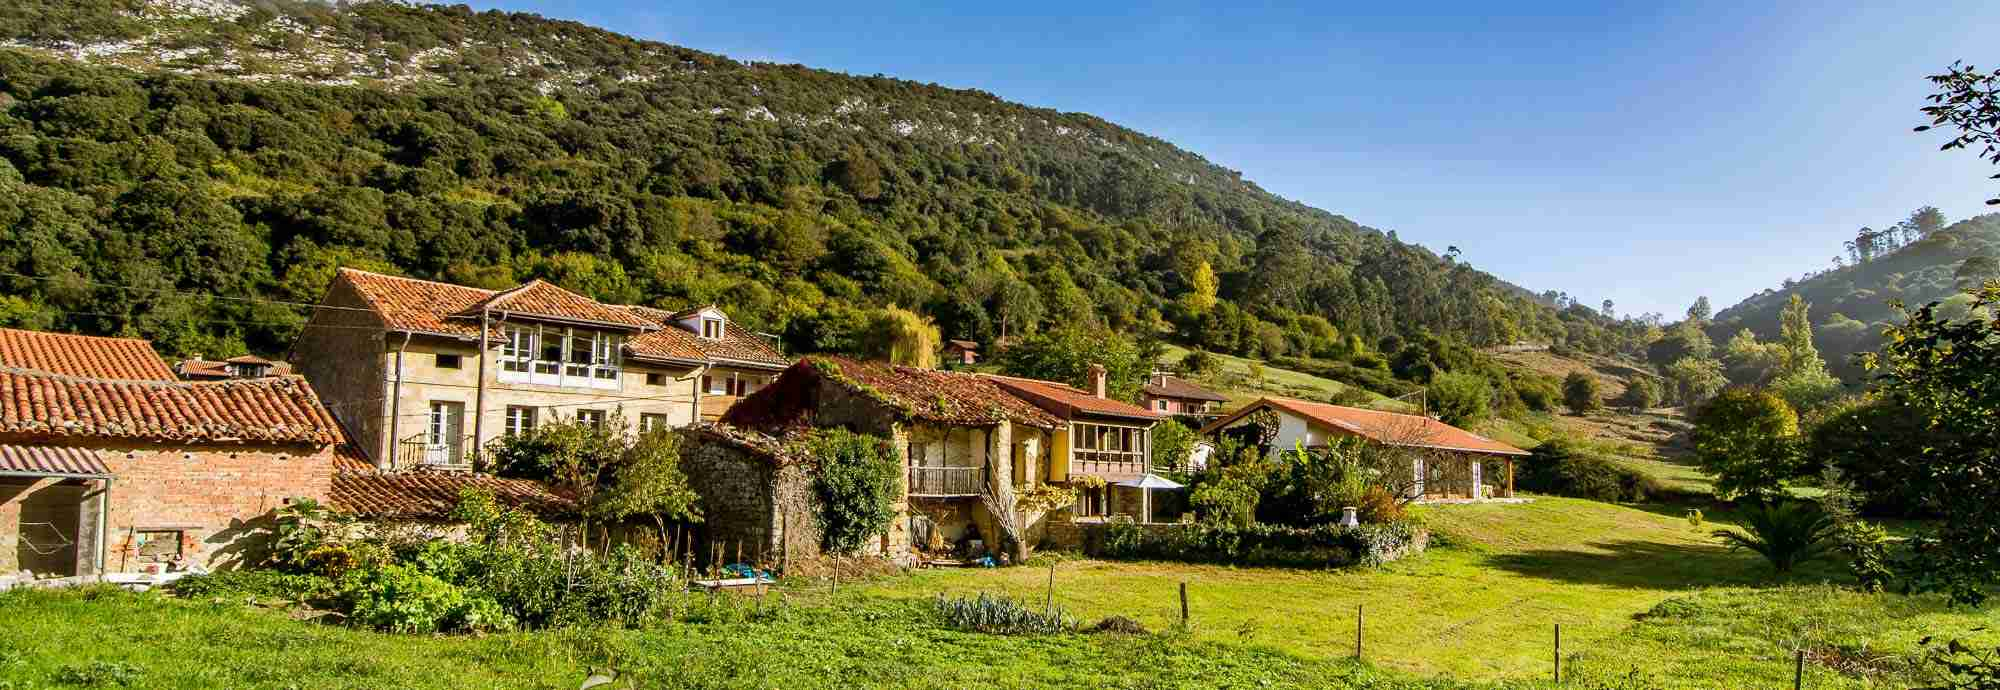 Pet friendly Holiday  Villas in Northern Spain